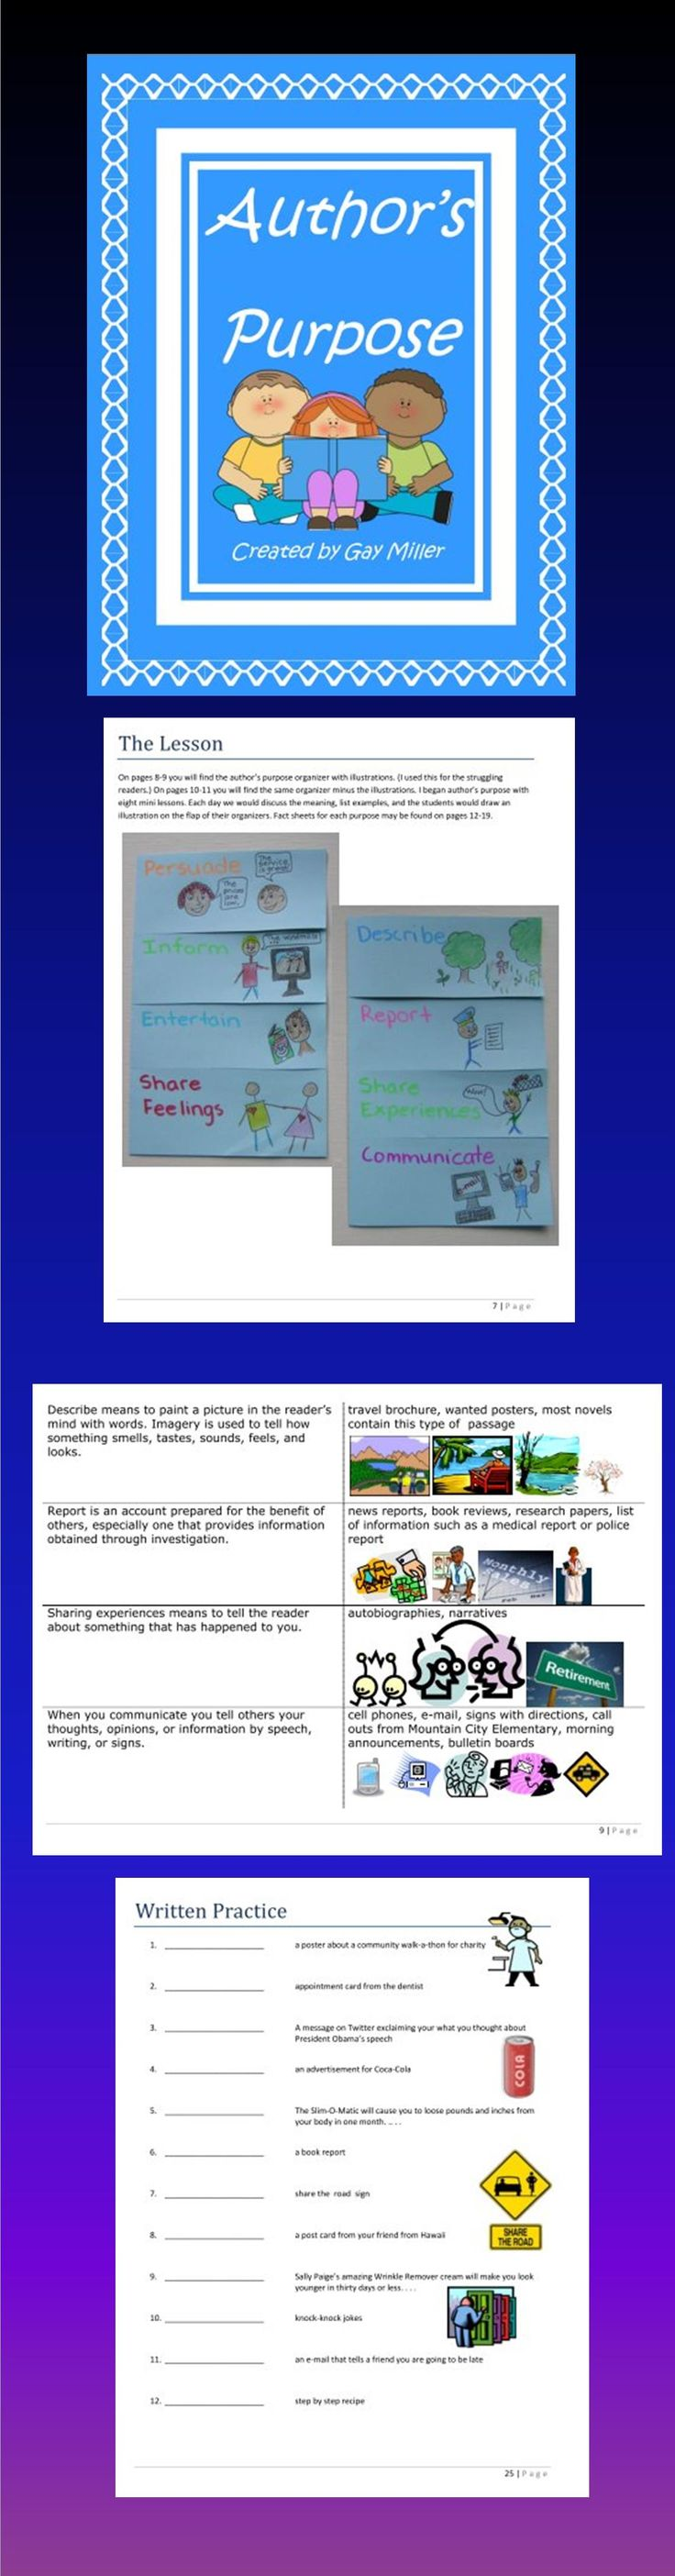 Free Language Arts Worksheets Worksheets Lesson Plans - mandegar.info